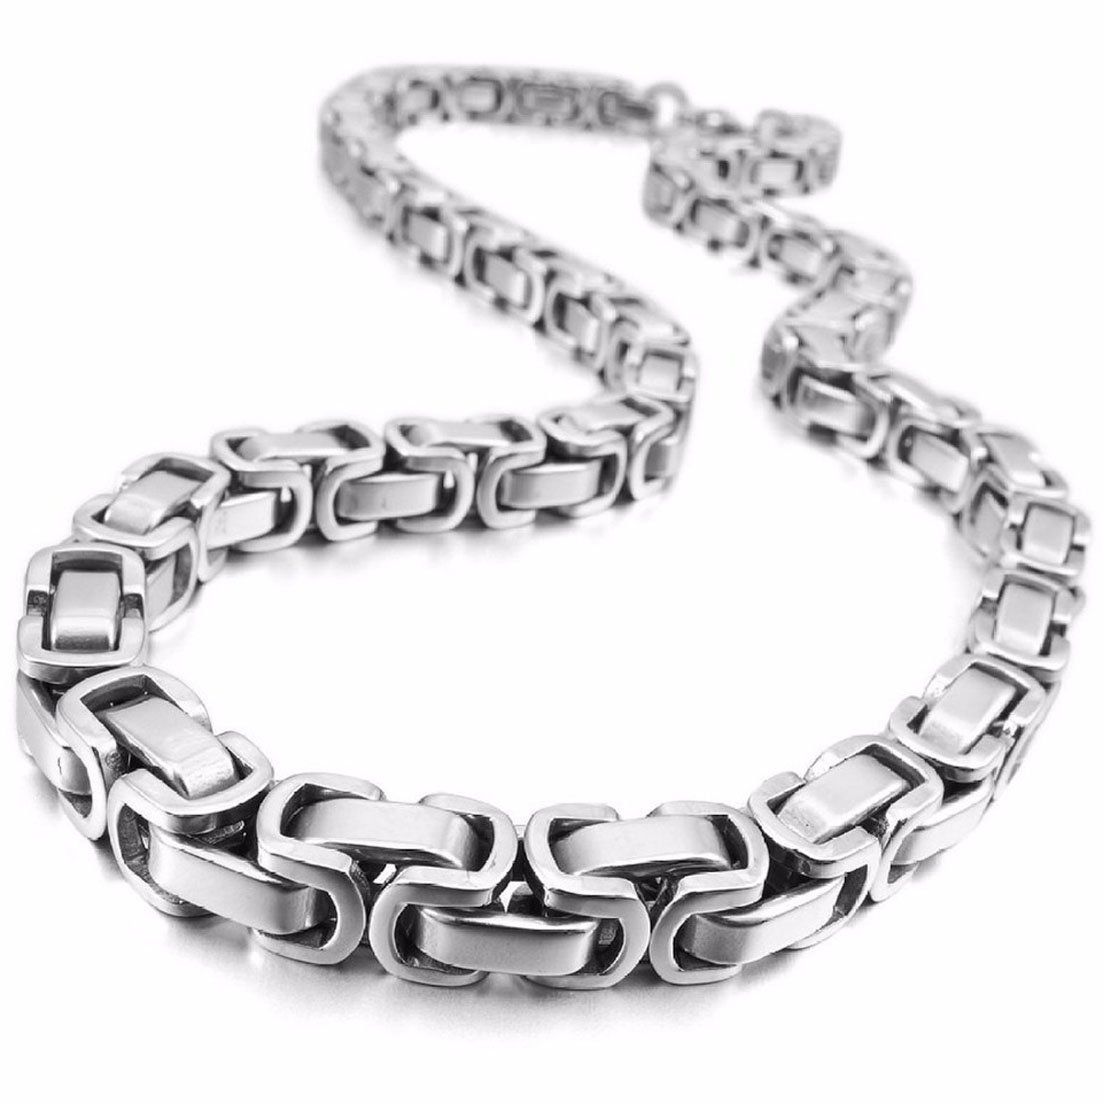 8mm Mens Fashion Stainless Steel Byzantine Chain Bracelet Necklace 7-40